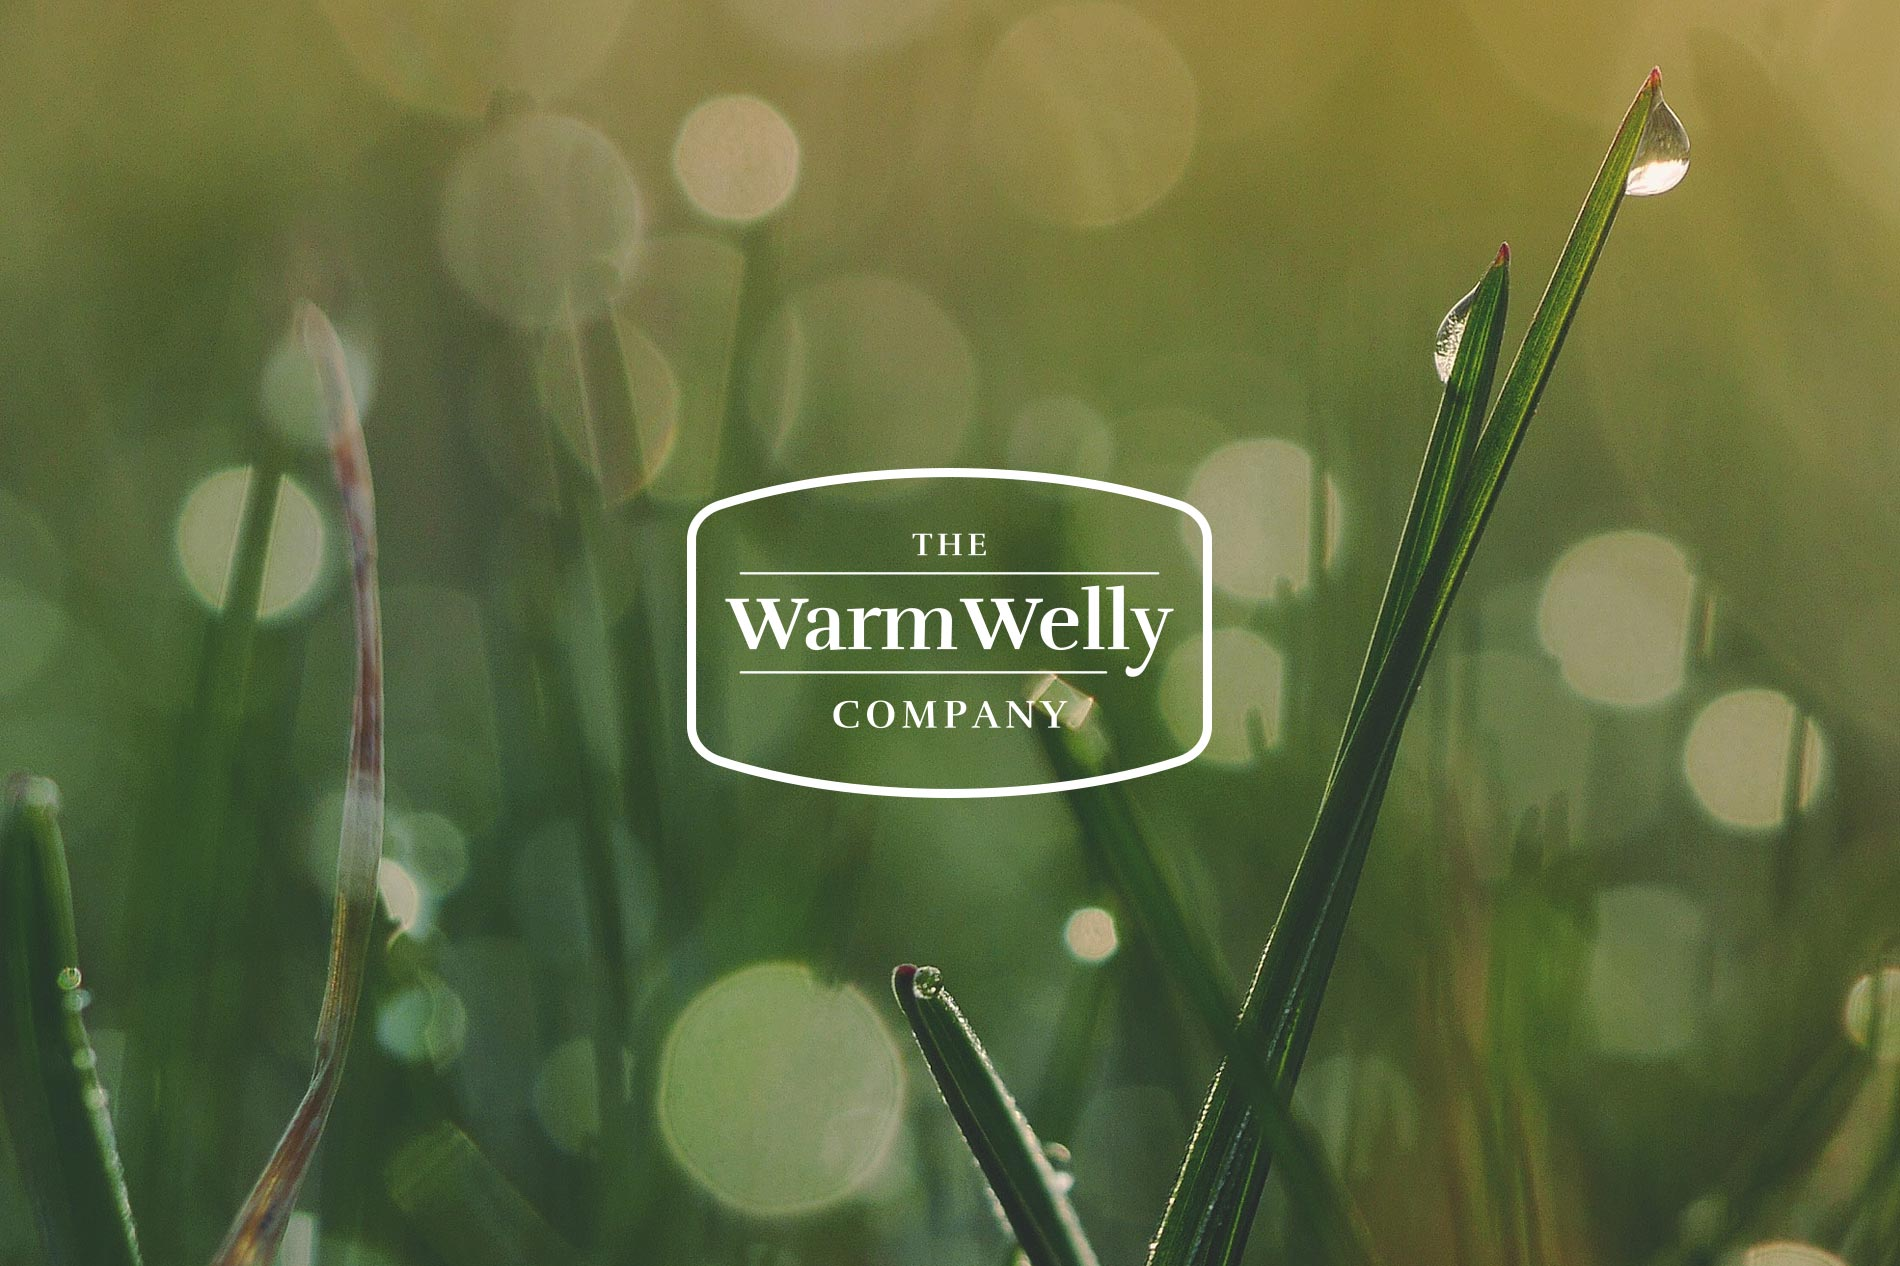 The Warm Welly Company Branding and Logo design